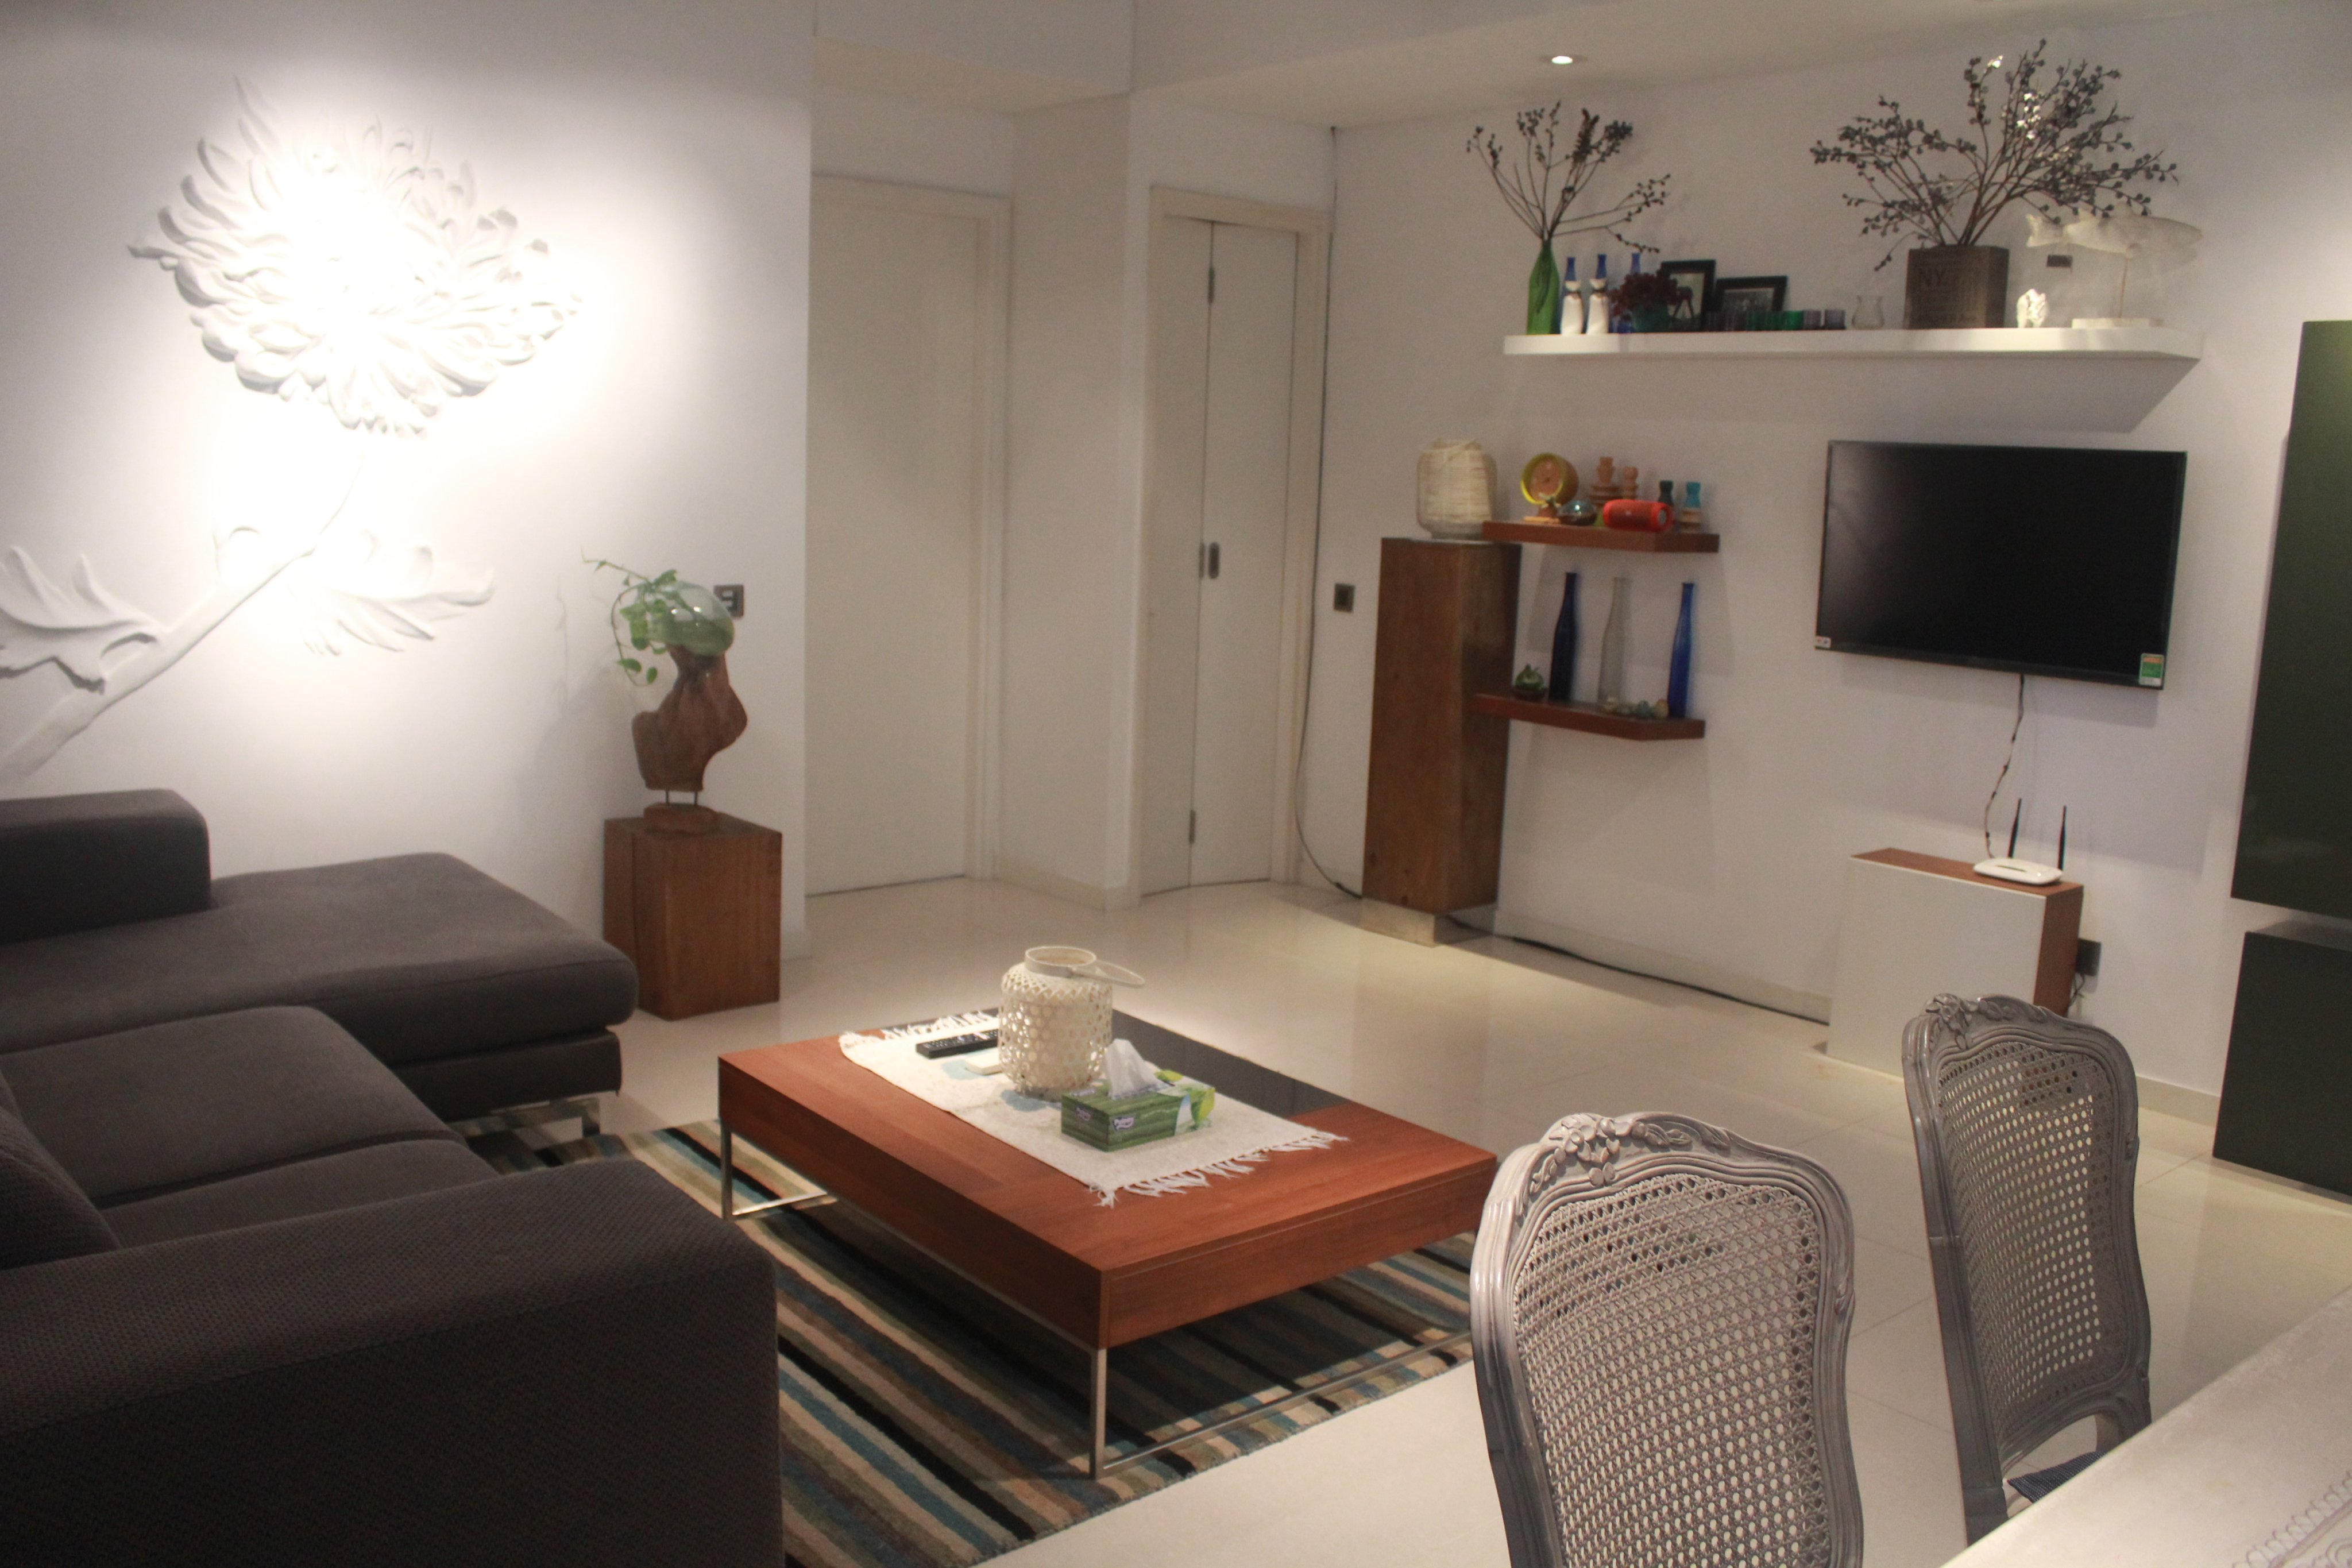 saigon pearl apartment for rent in binh thanh district hcmc D201237(20)